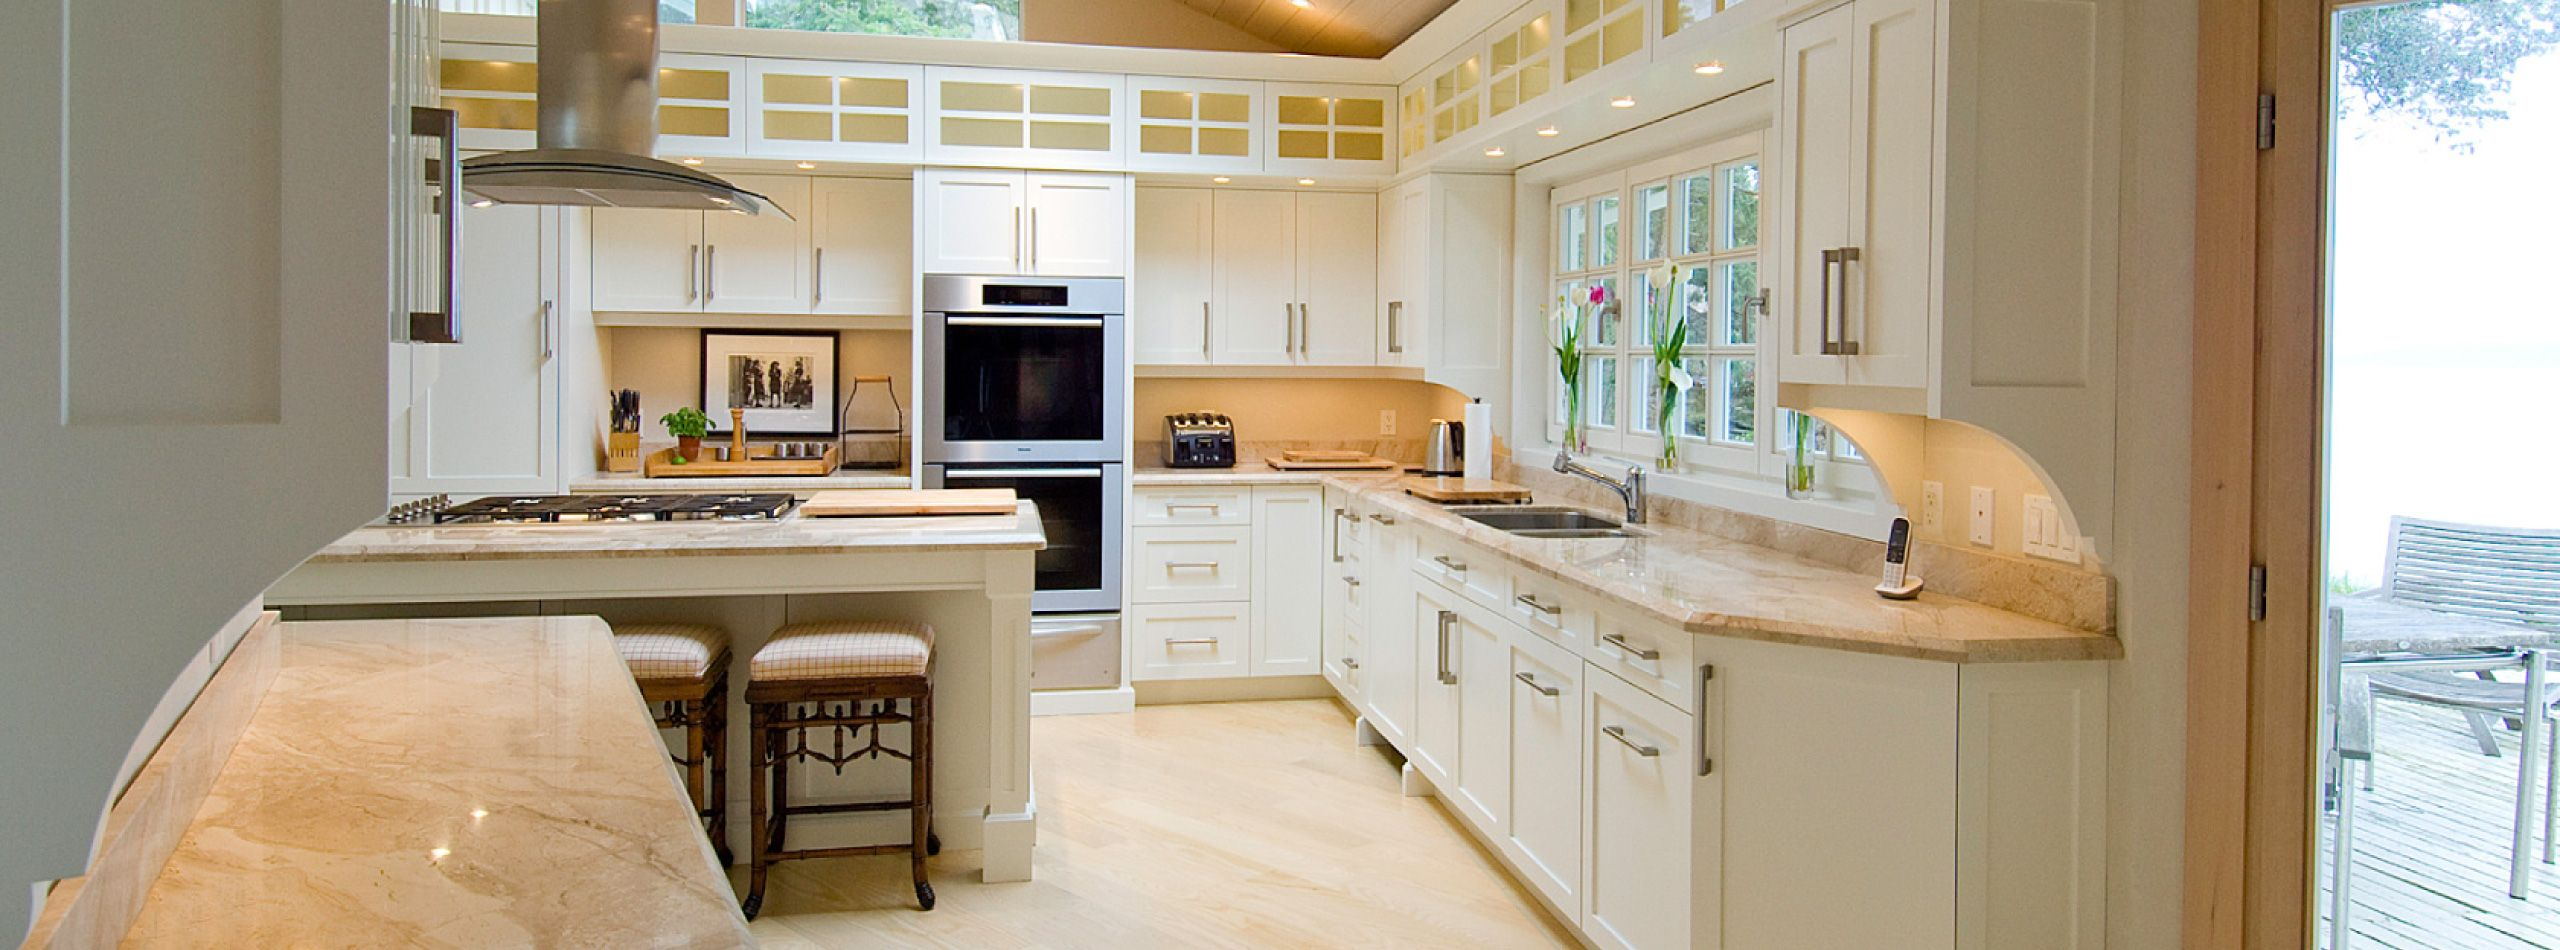 Cabinet Works: Custom Cabinetry in Sidney